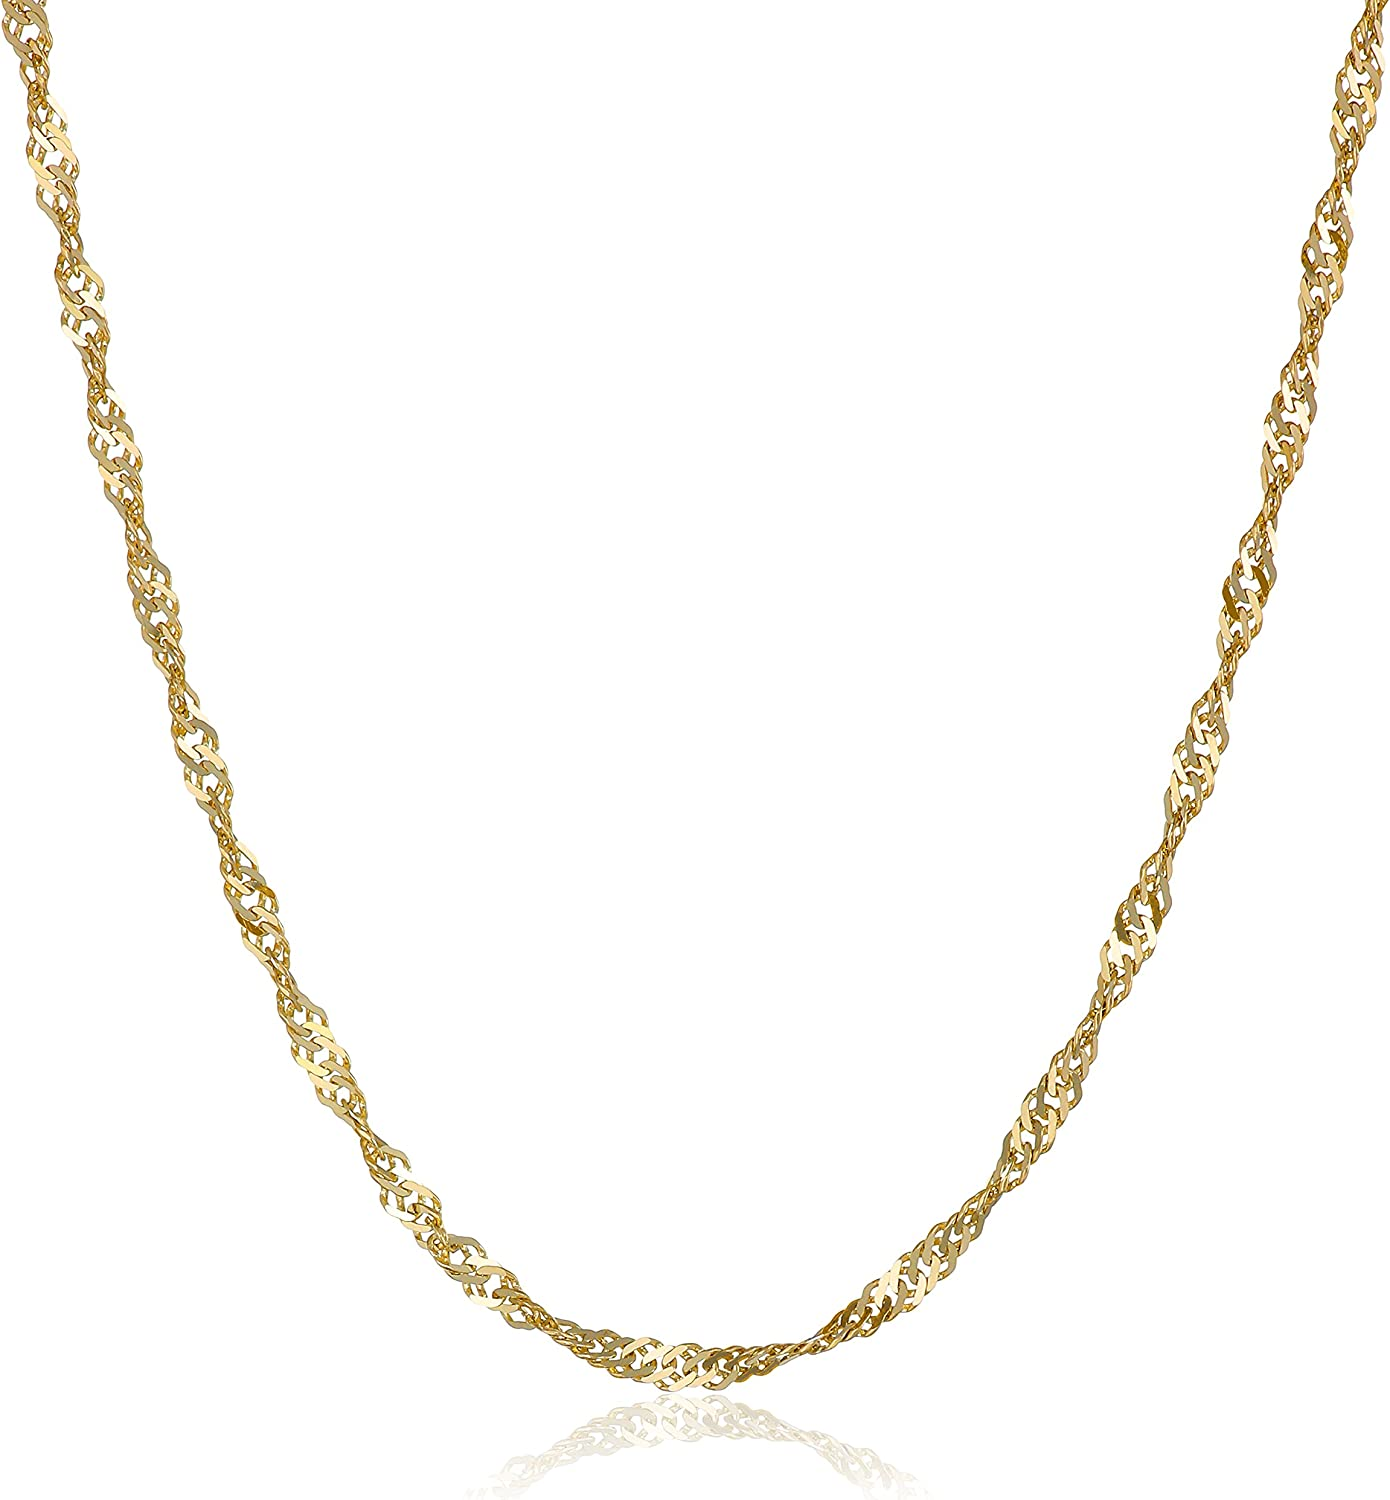 Women/'s European Style 10k Solid Gold Chain Necklace 2.0 mm